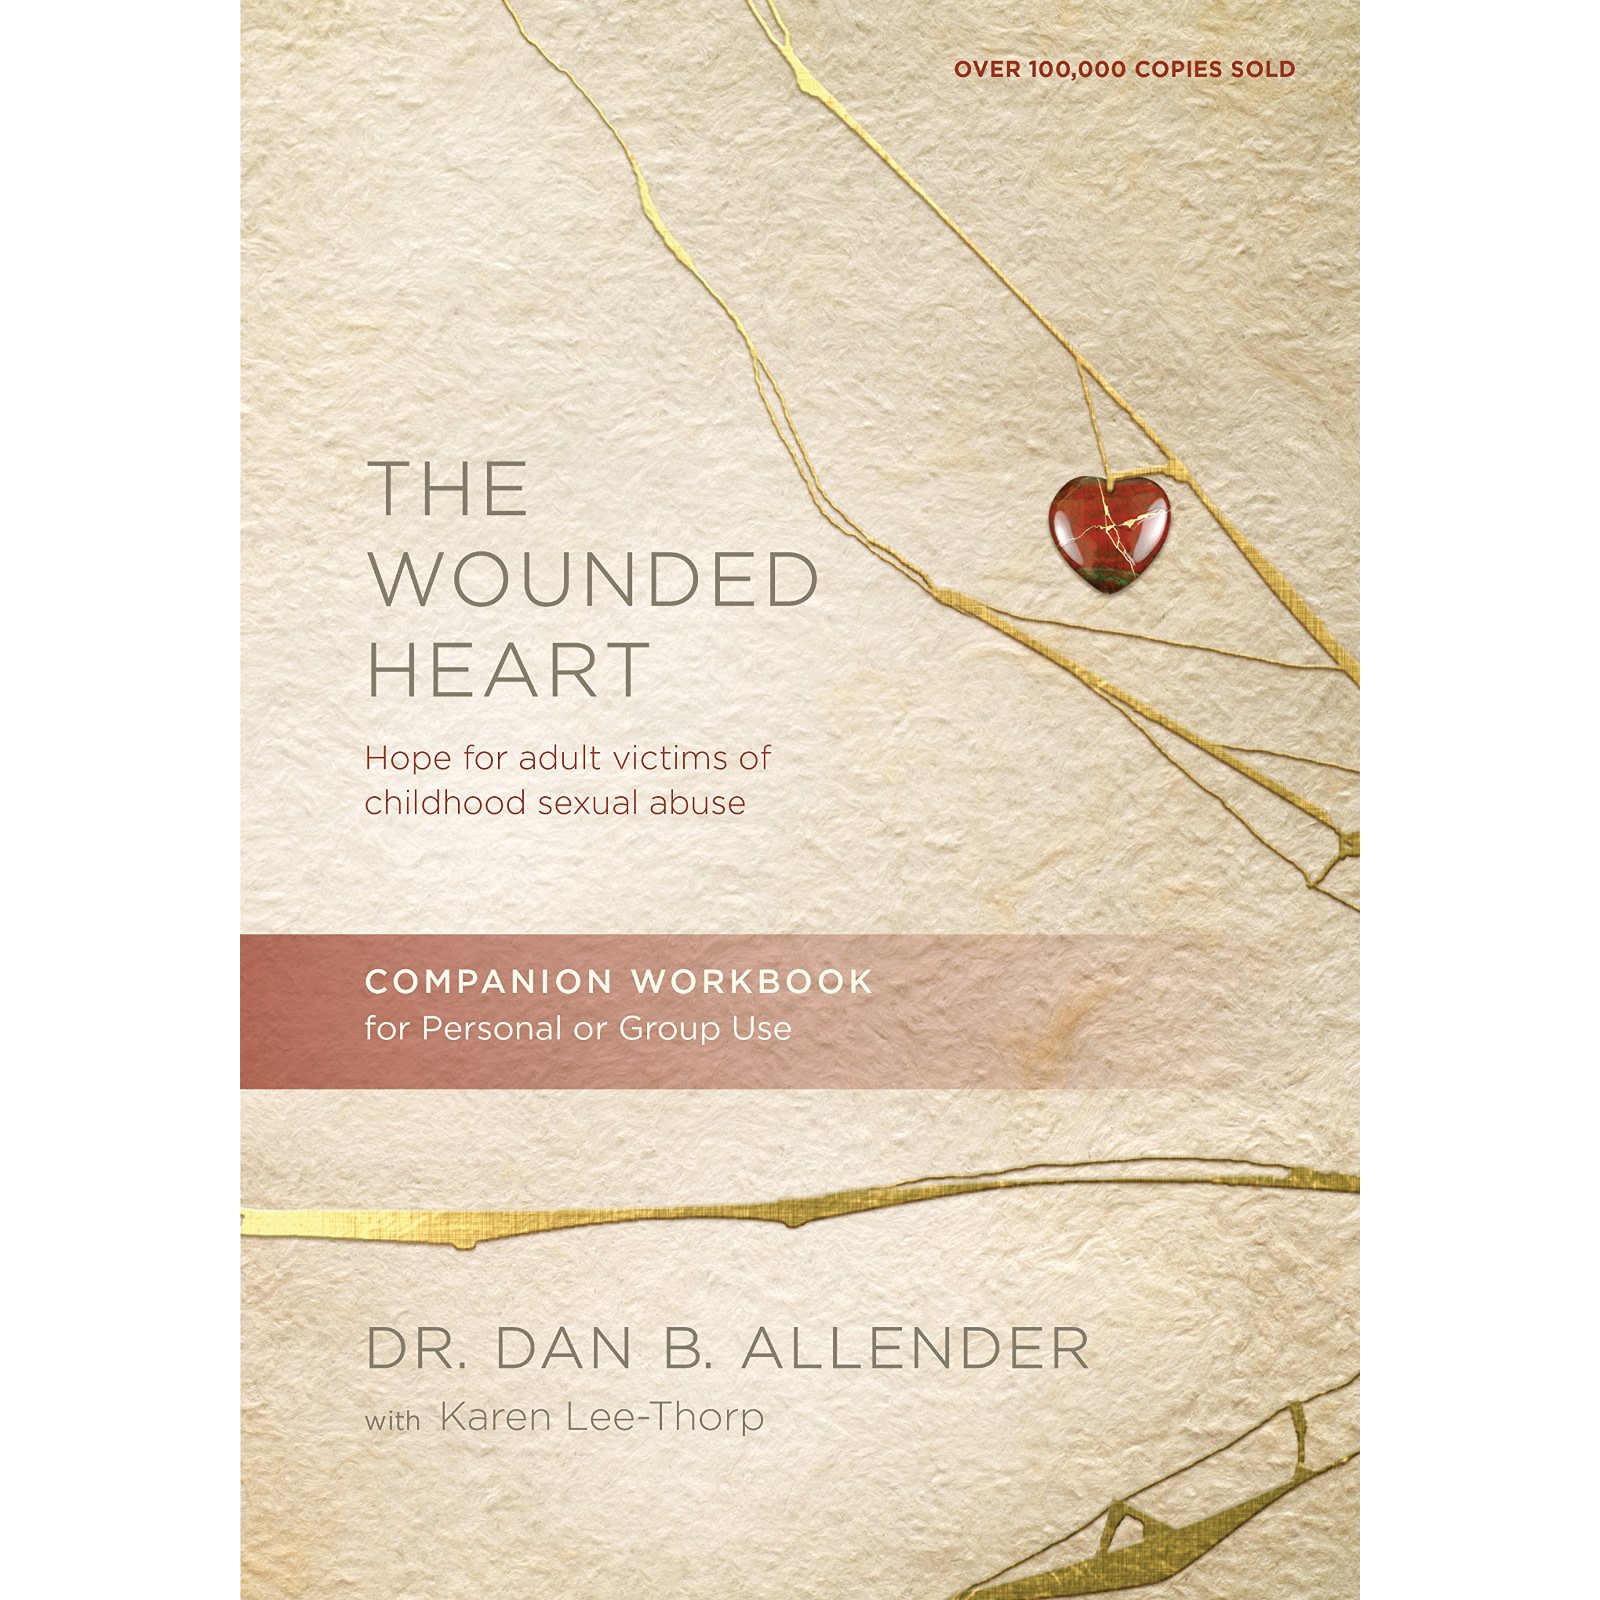 DAN B. ALLENDER The Wounded Heart Companion Workbook